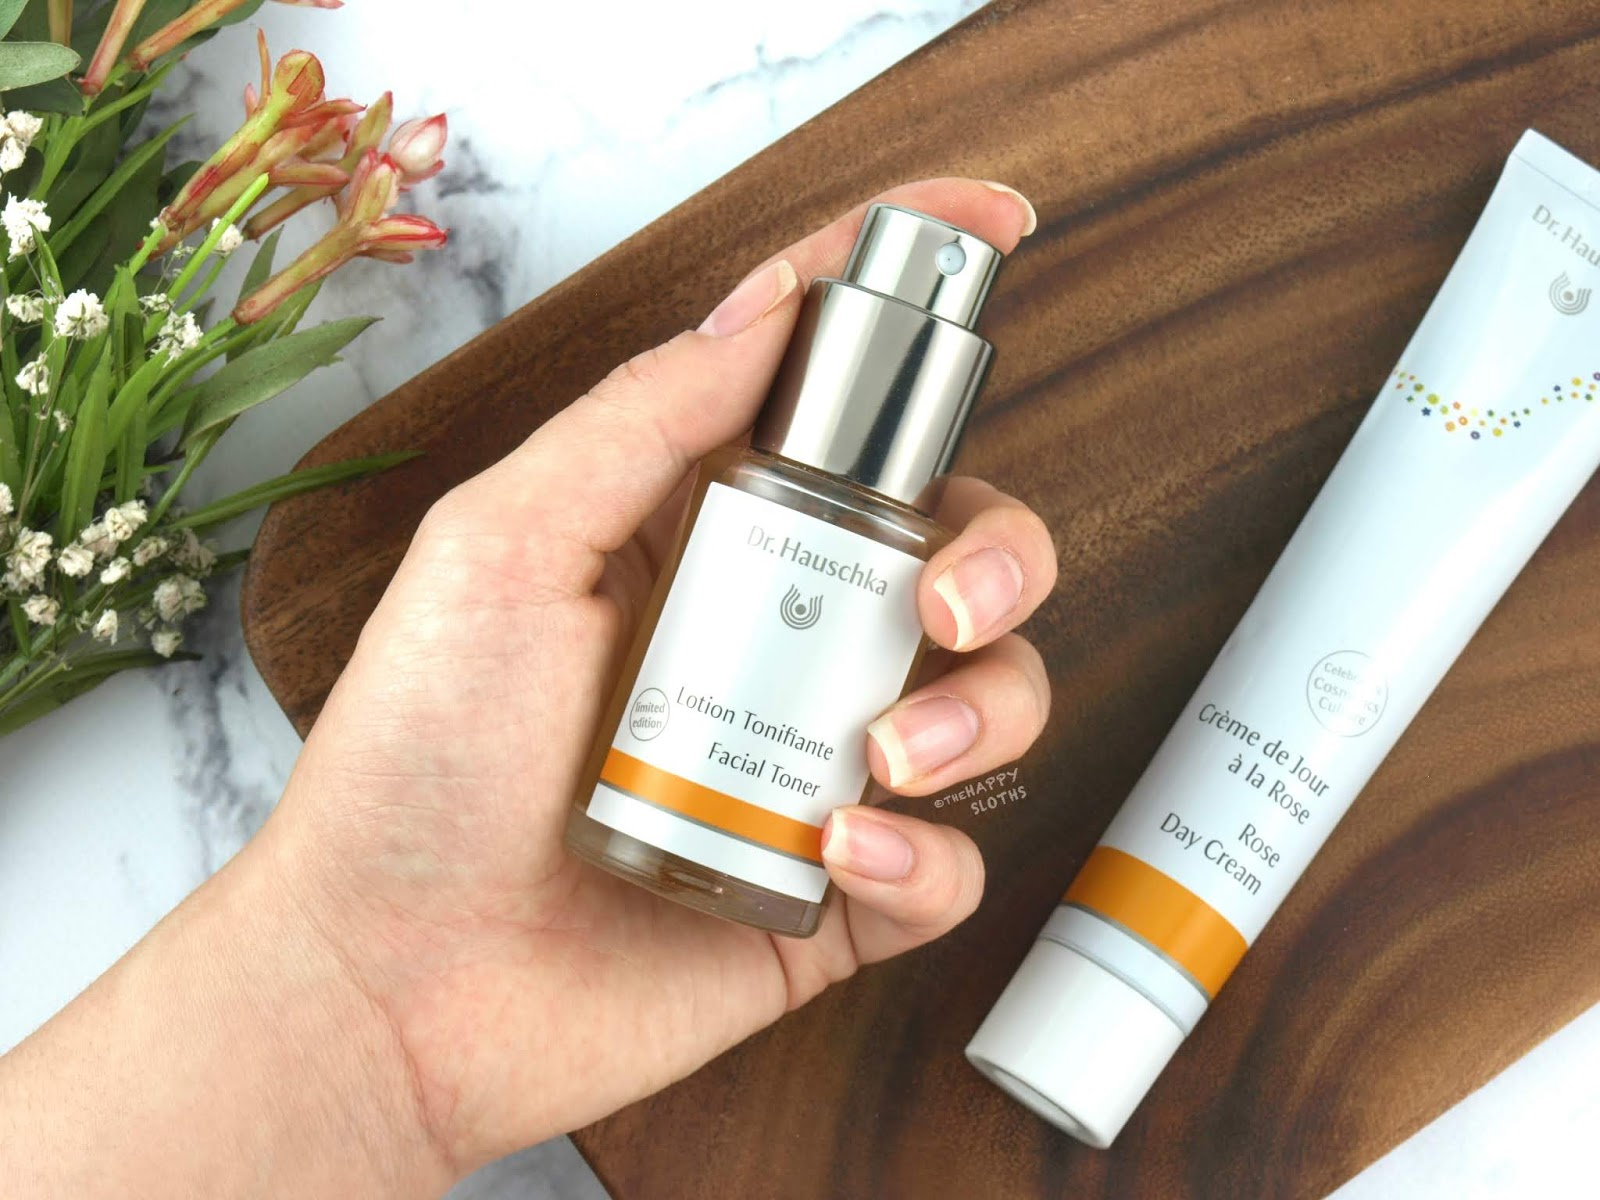 Dr. Hauschka | Facial Toner: Review